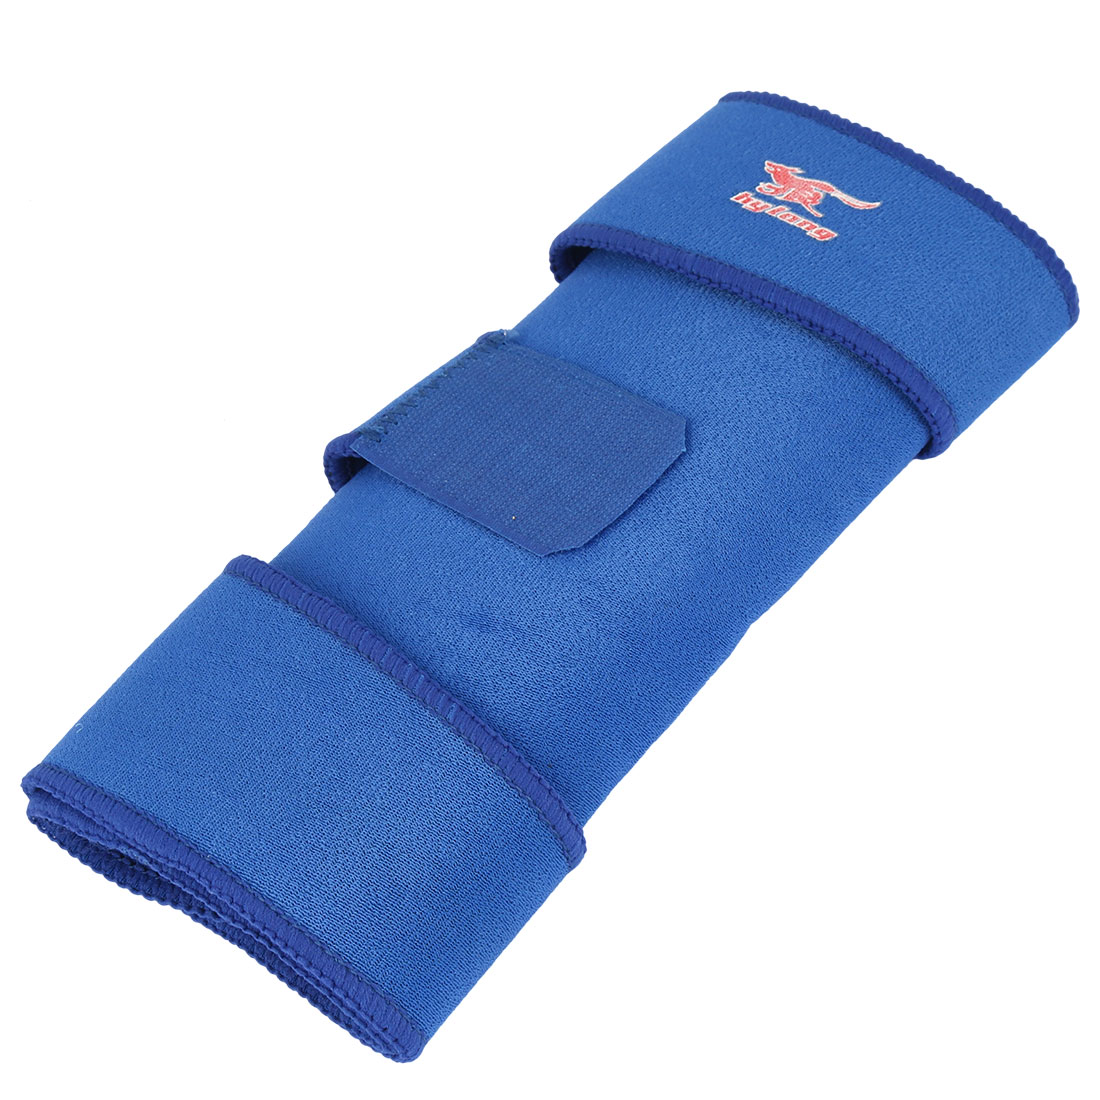 Basketball Sports Nylon Elastic Leg Muscle Support Protector Sleeve Knee Brace Blue